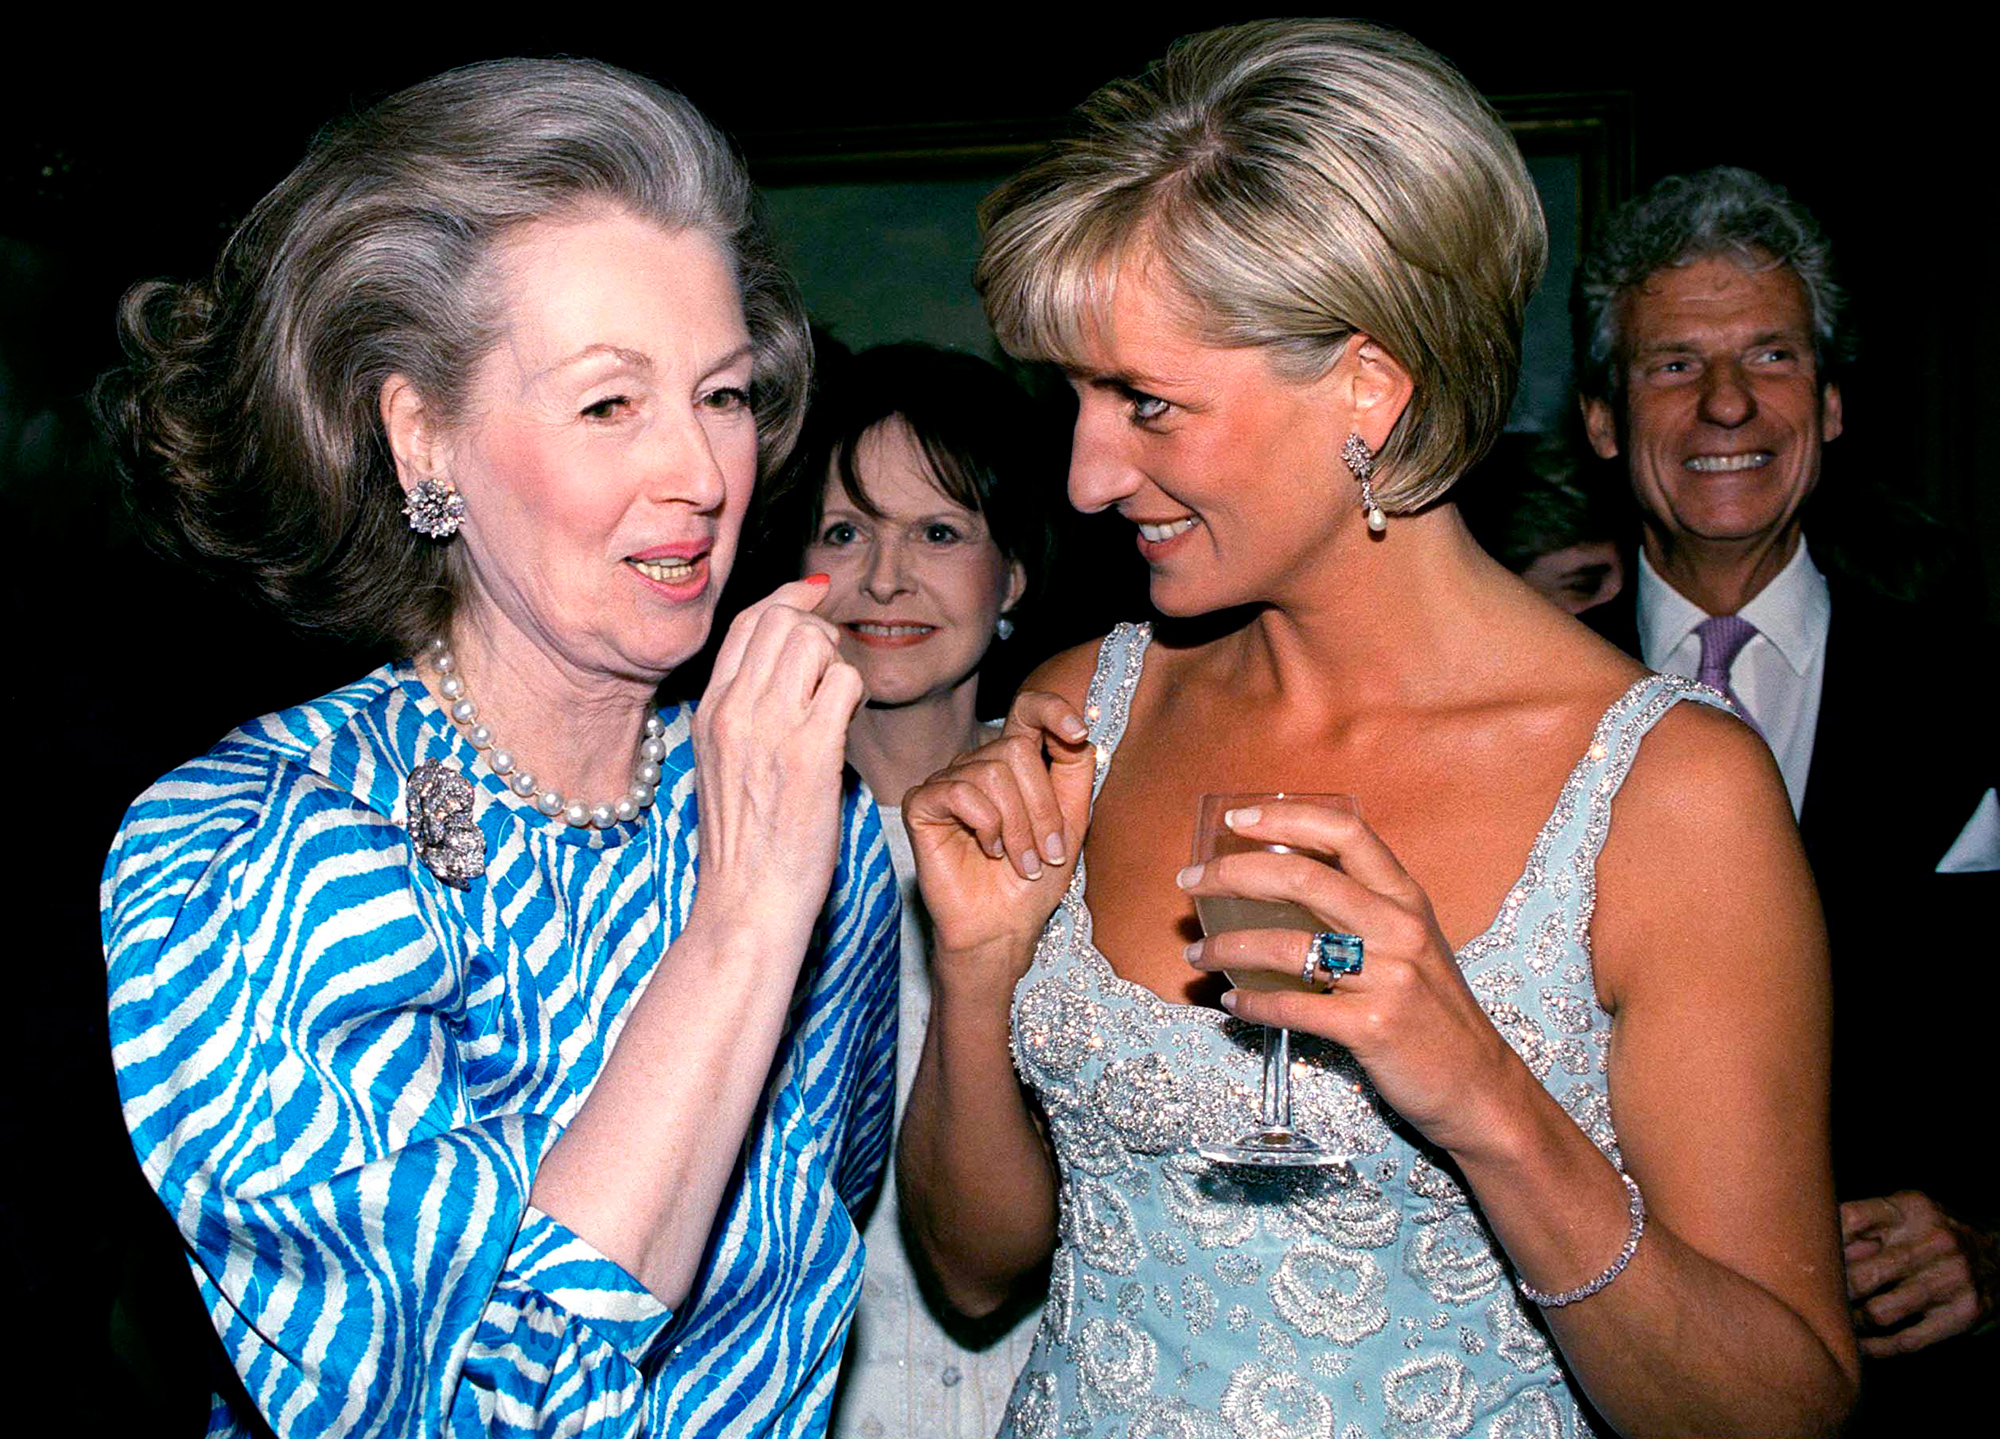 LONDON, UNITED KINGDOM - JUNE 02: Princess Diana Talking With Raine, Comtesse De Chambrun (previously Her Stepmother, Countess Raine Spencer) At A Private Viewing And Reception At Christies Of Dresses Worn By The Princess That Are For Auction To Raise Money For The Aids Crisis Trust And The Royal Marsden Hospital Cancer Fund. (Photo by Tim Graham/Getty Images)